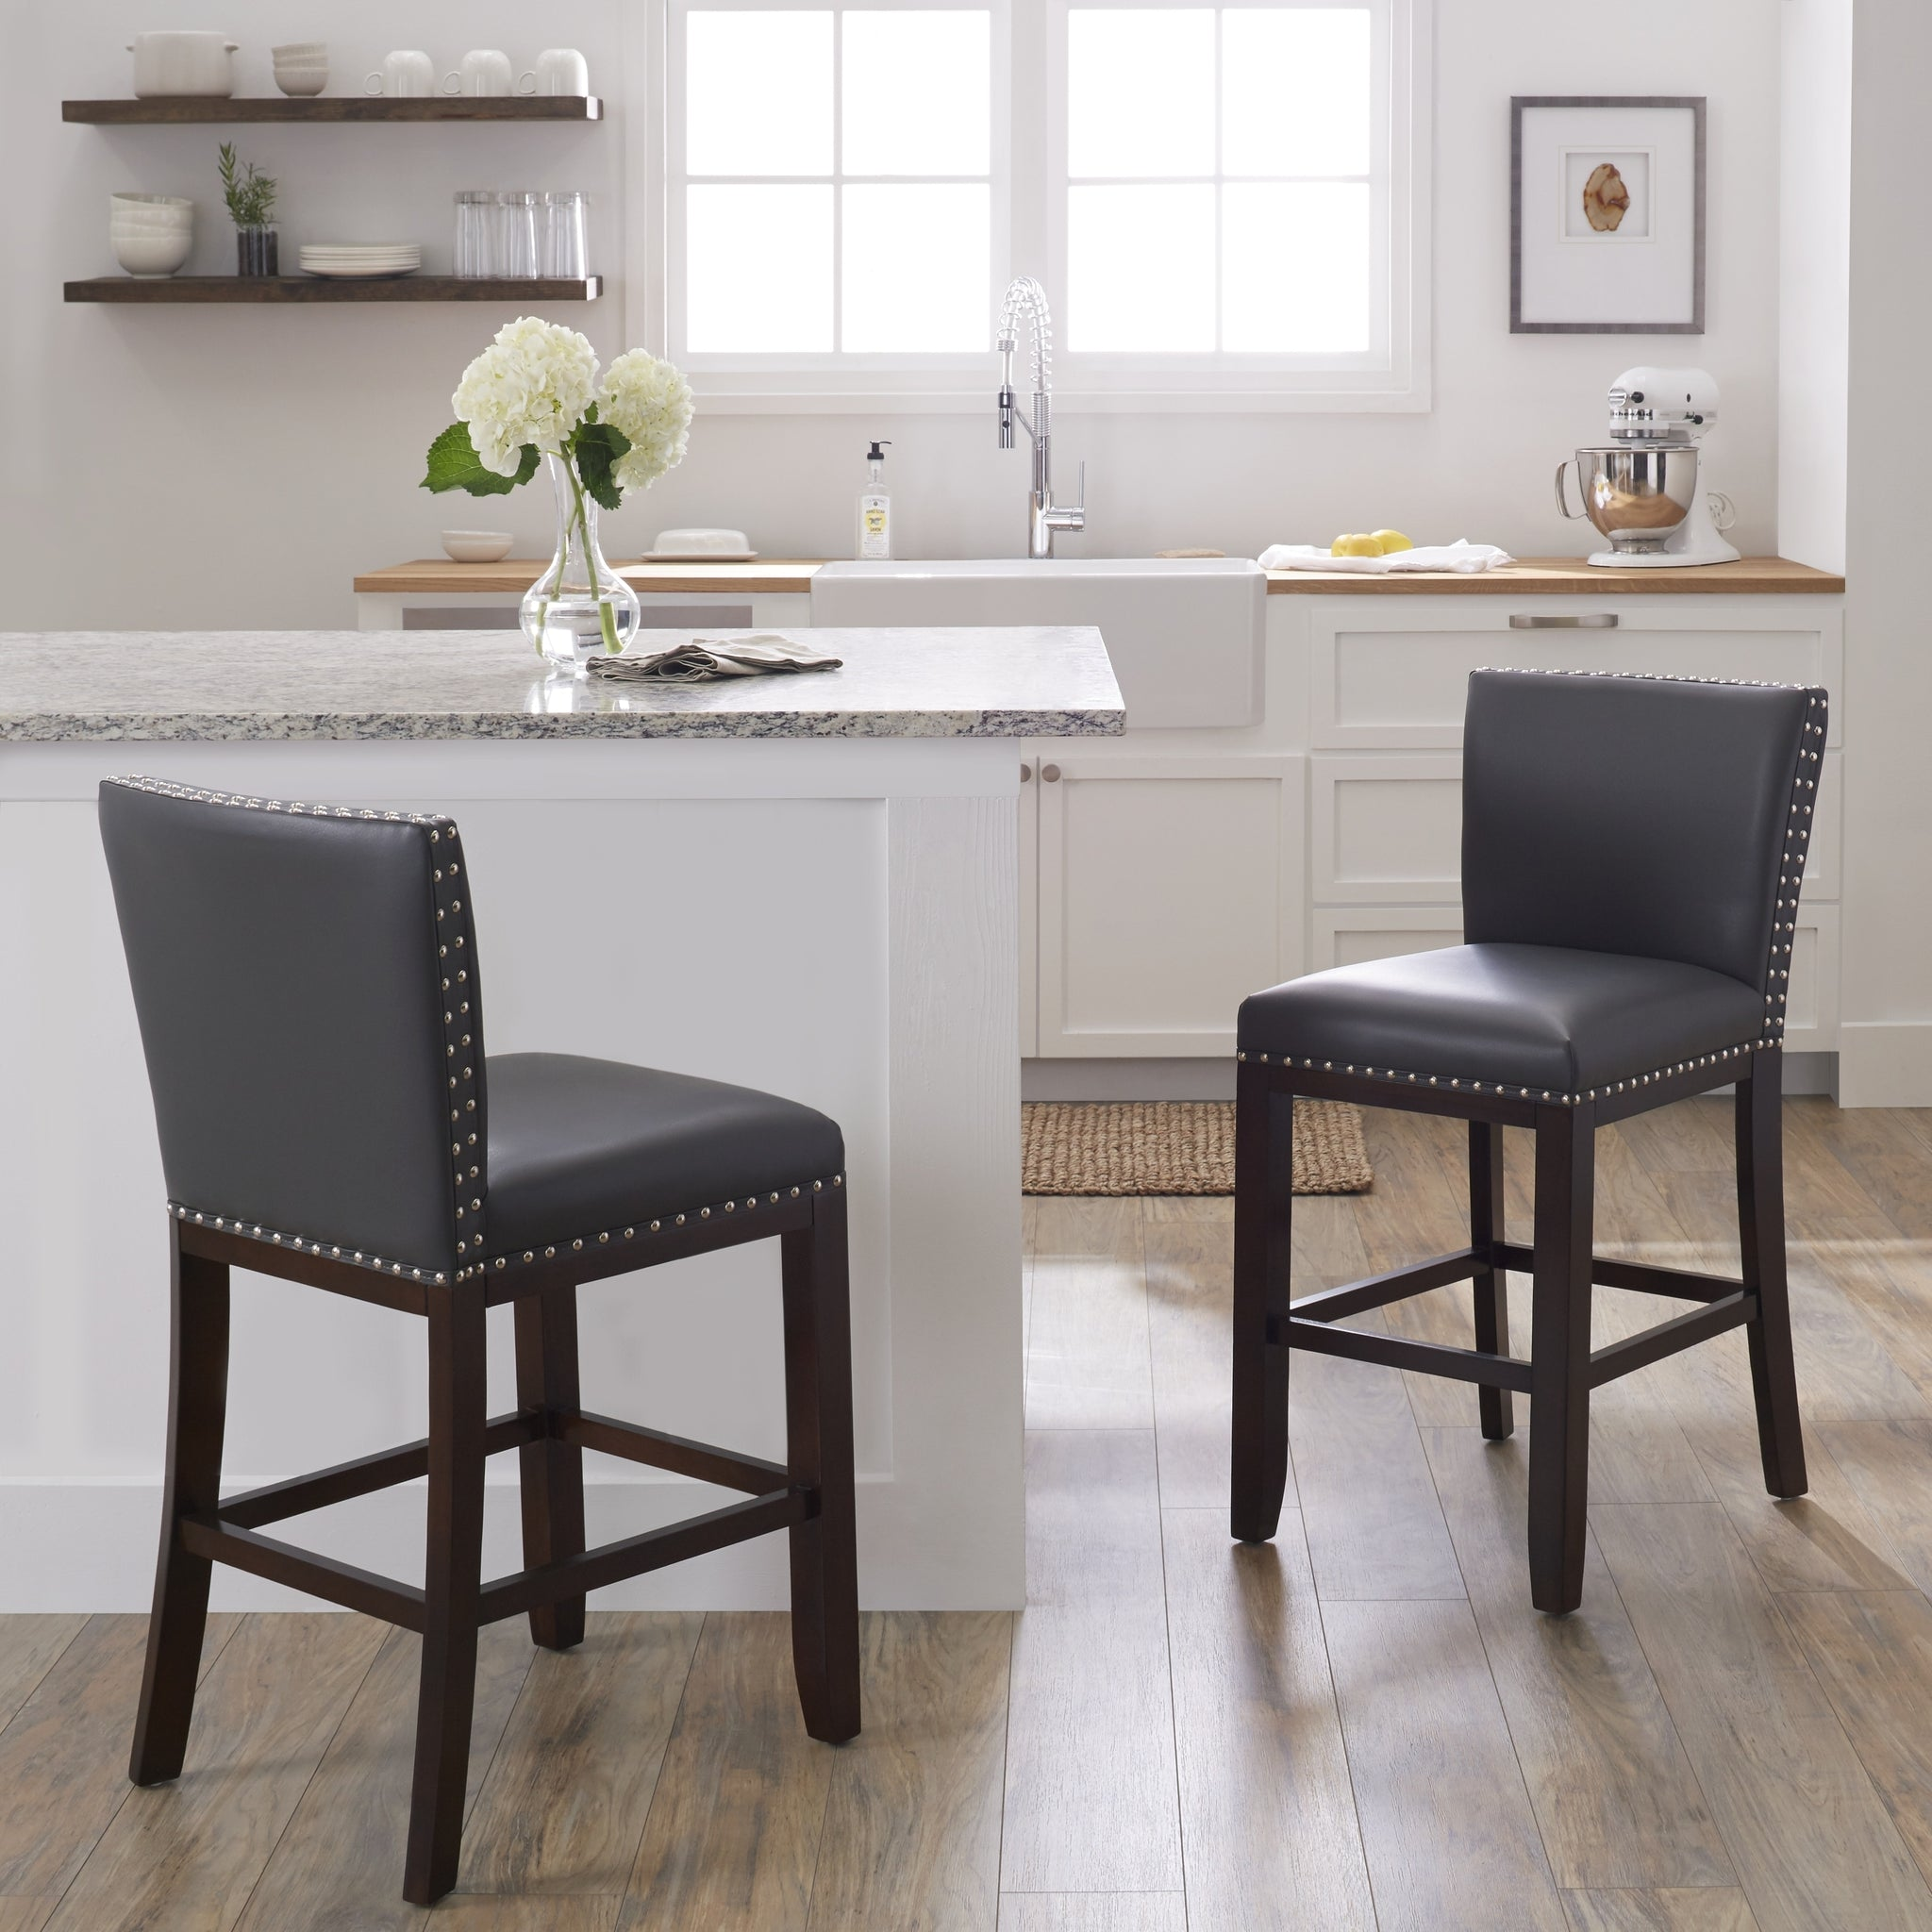 24 inch counter stools 24 inch Counter Stool (Set of 2) | Handy 24 inch counter stools